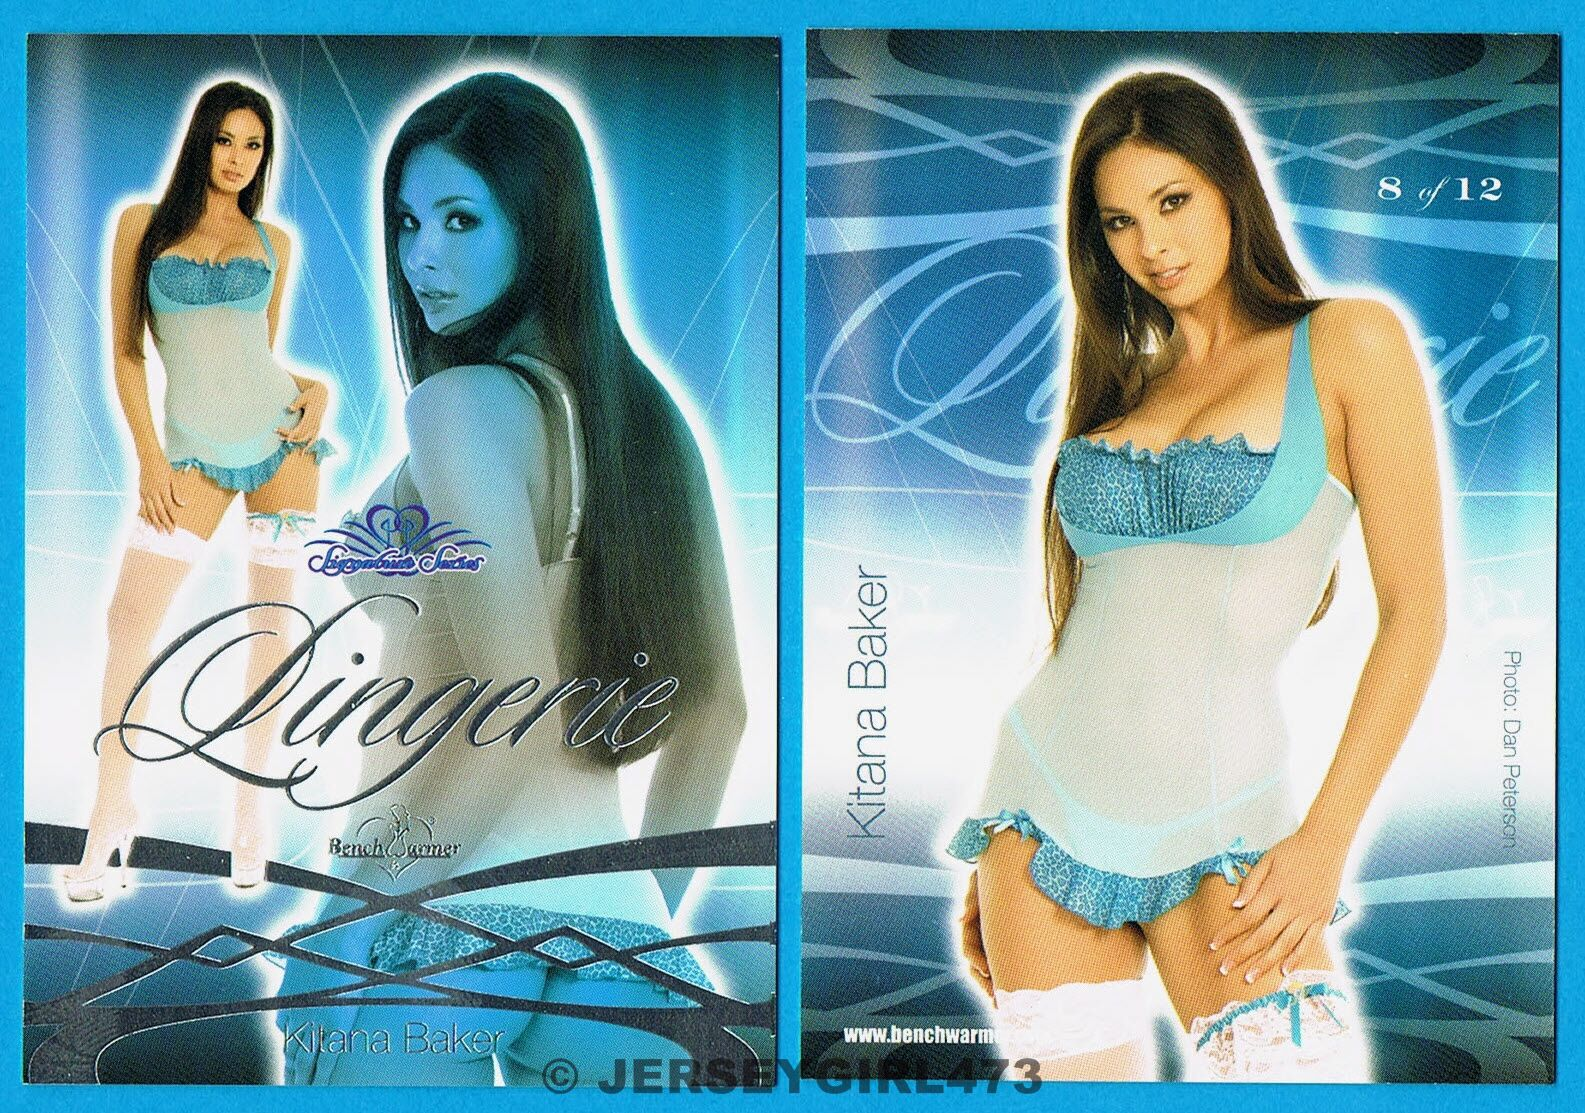 Kitana Baker 2008 Bench Warmer Signature Series Lingerie Foil Card #8